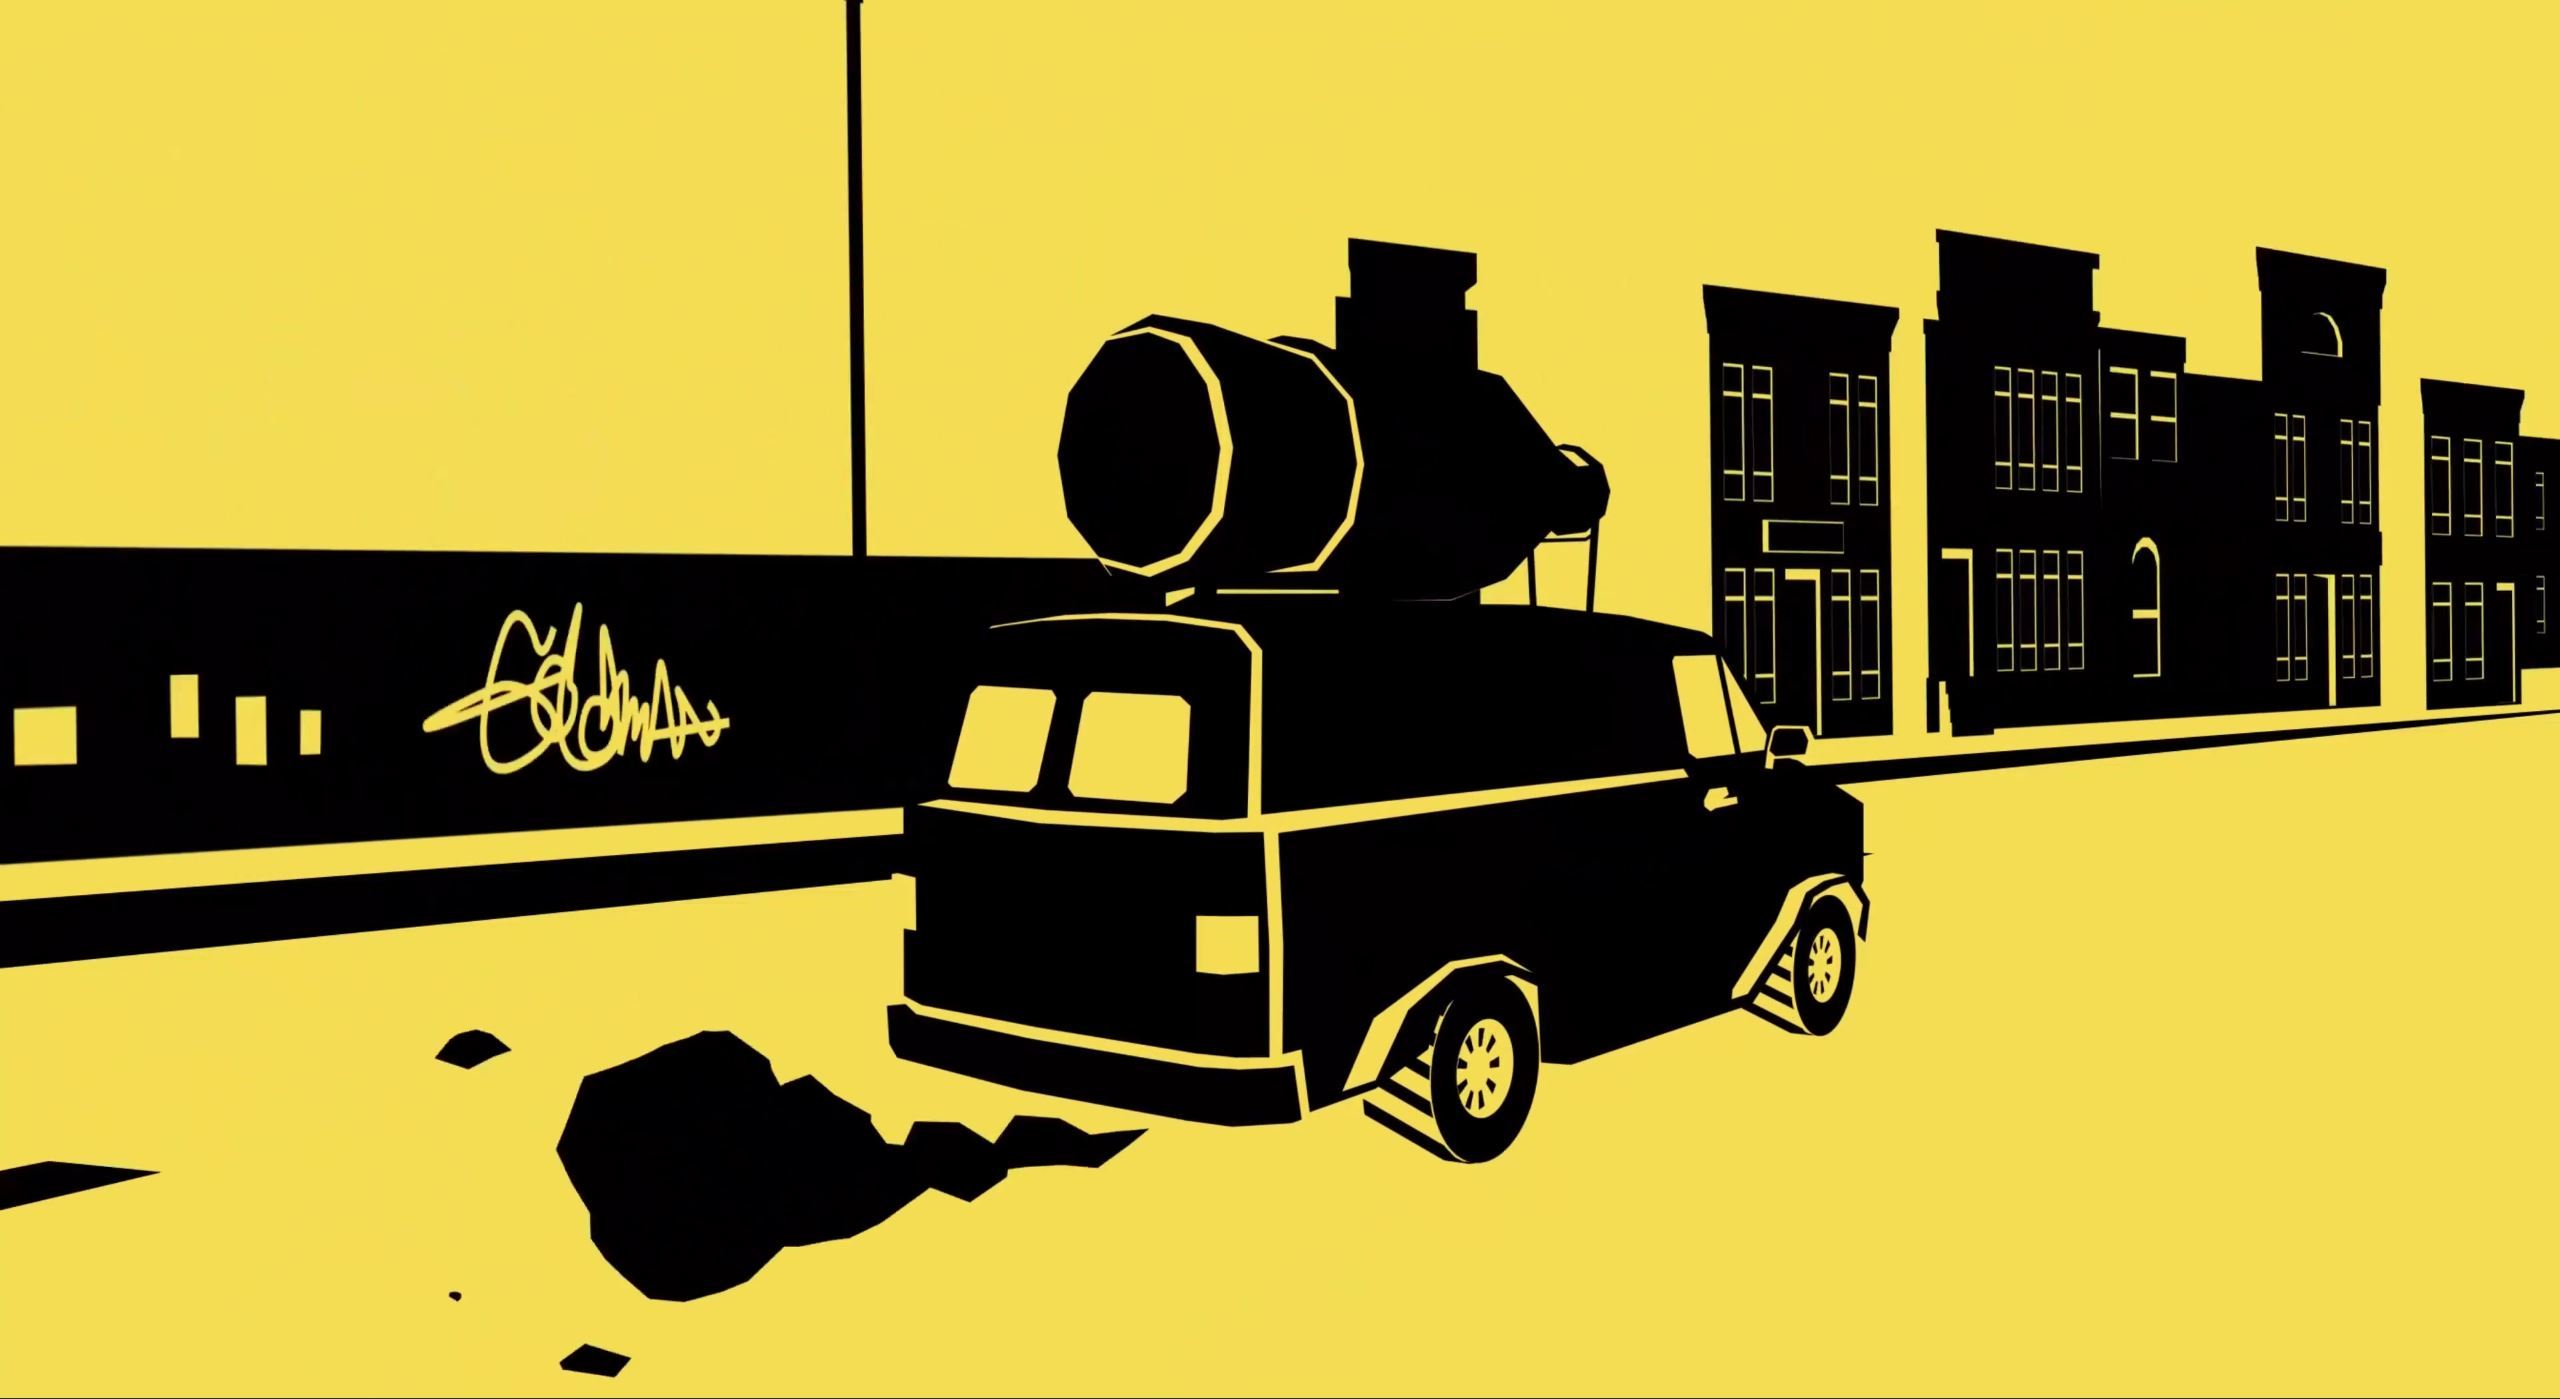 A splash screen for Rebel Cops, which relies heavily on a yellow crime scene tape aesthetic. Defunded and discraced, the rebel cops ride around in a soda delivery truck.